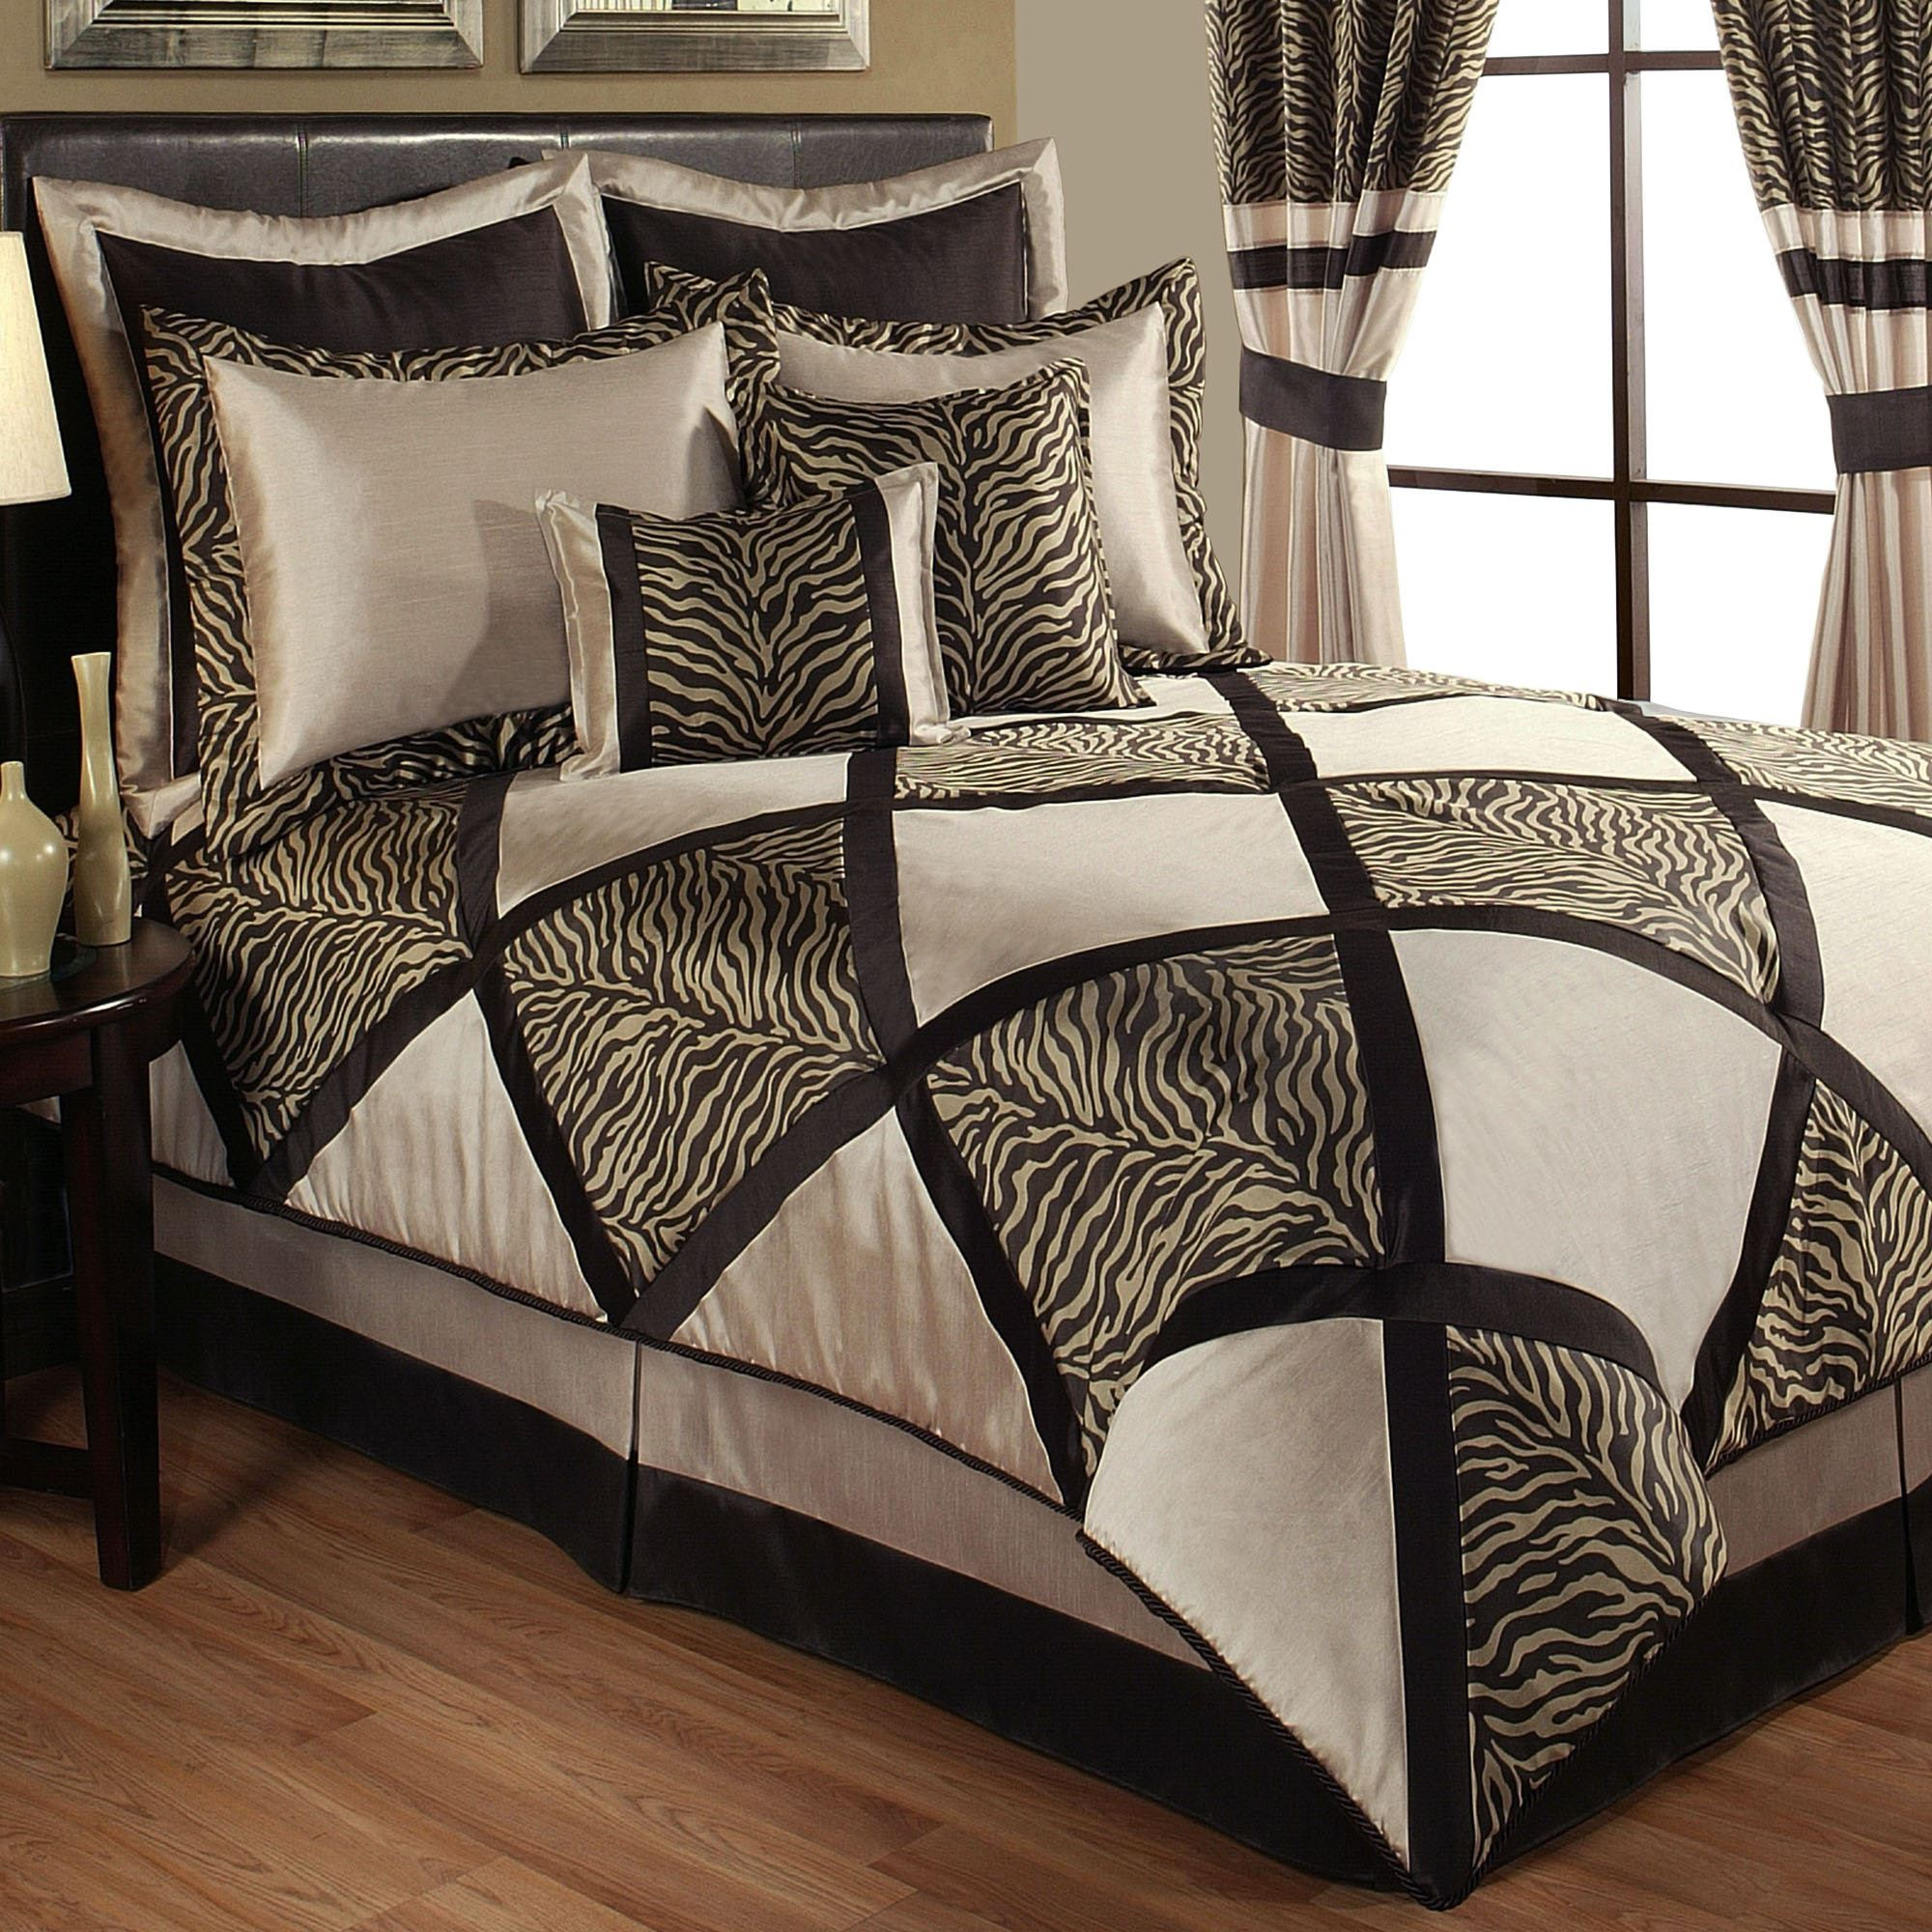 Leopard Print Themed Bedroom: True Safari Zebra Print Comforter Bedding